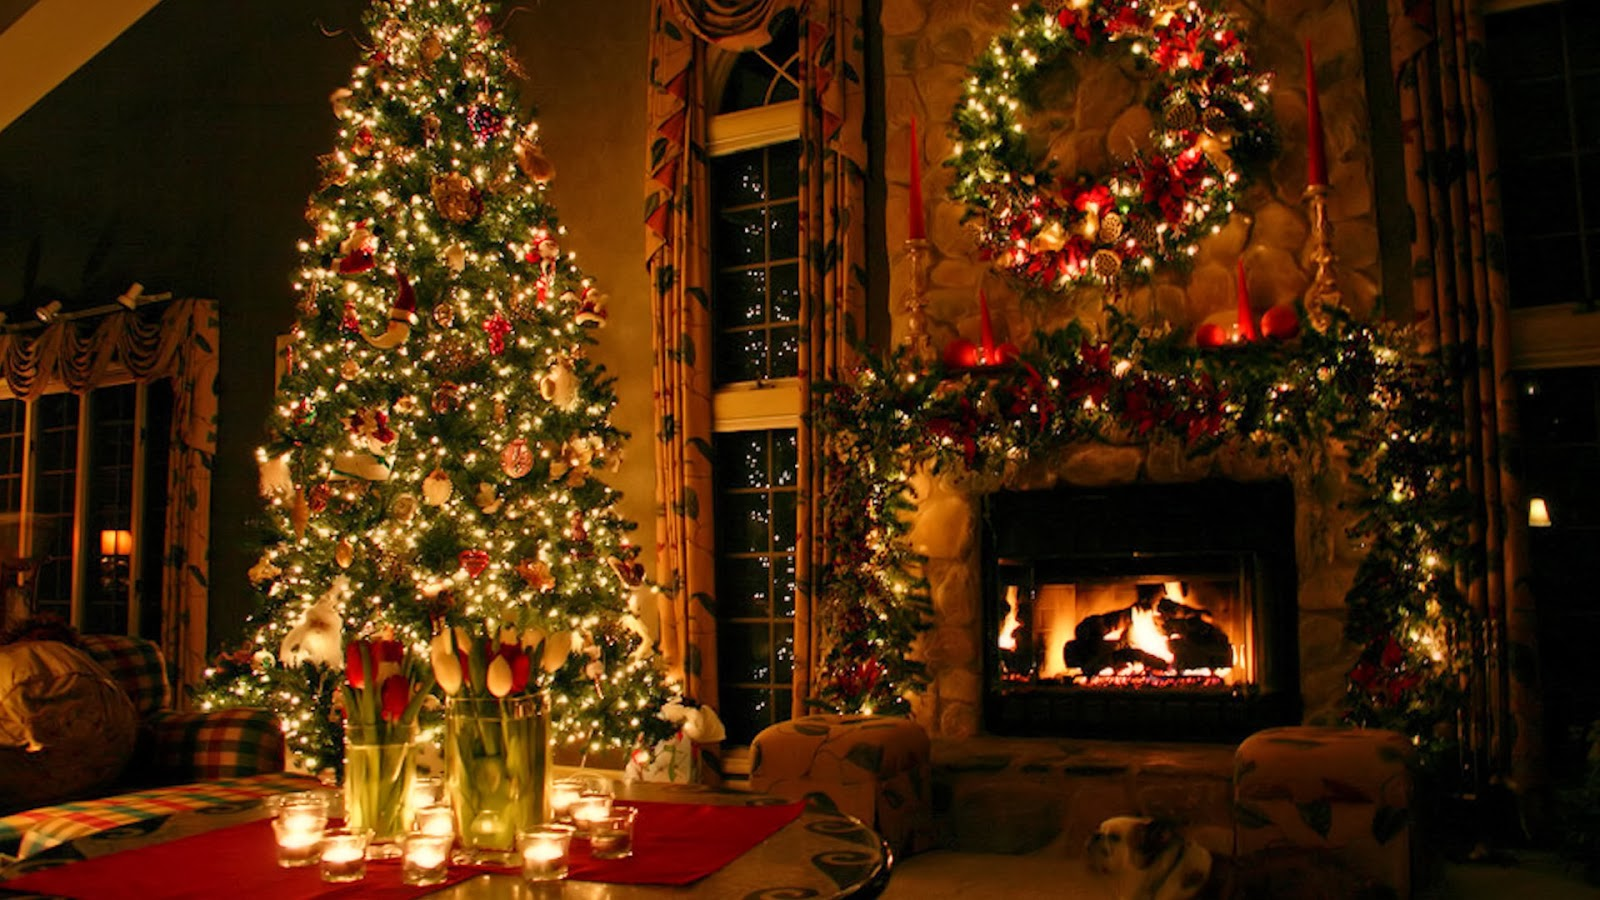 Christmas decorations ideas world top blogger for Pictures of indoor christmas decorations